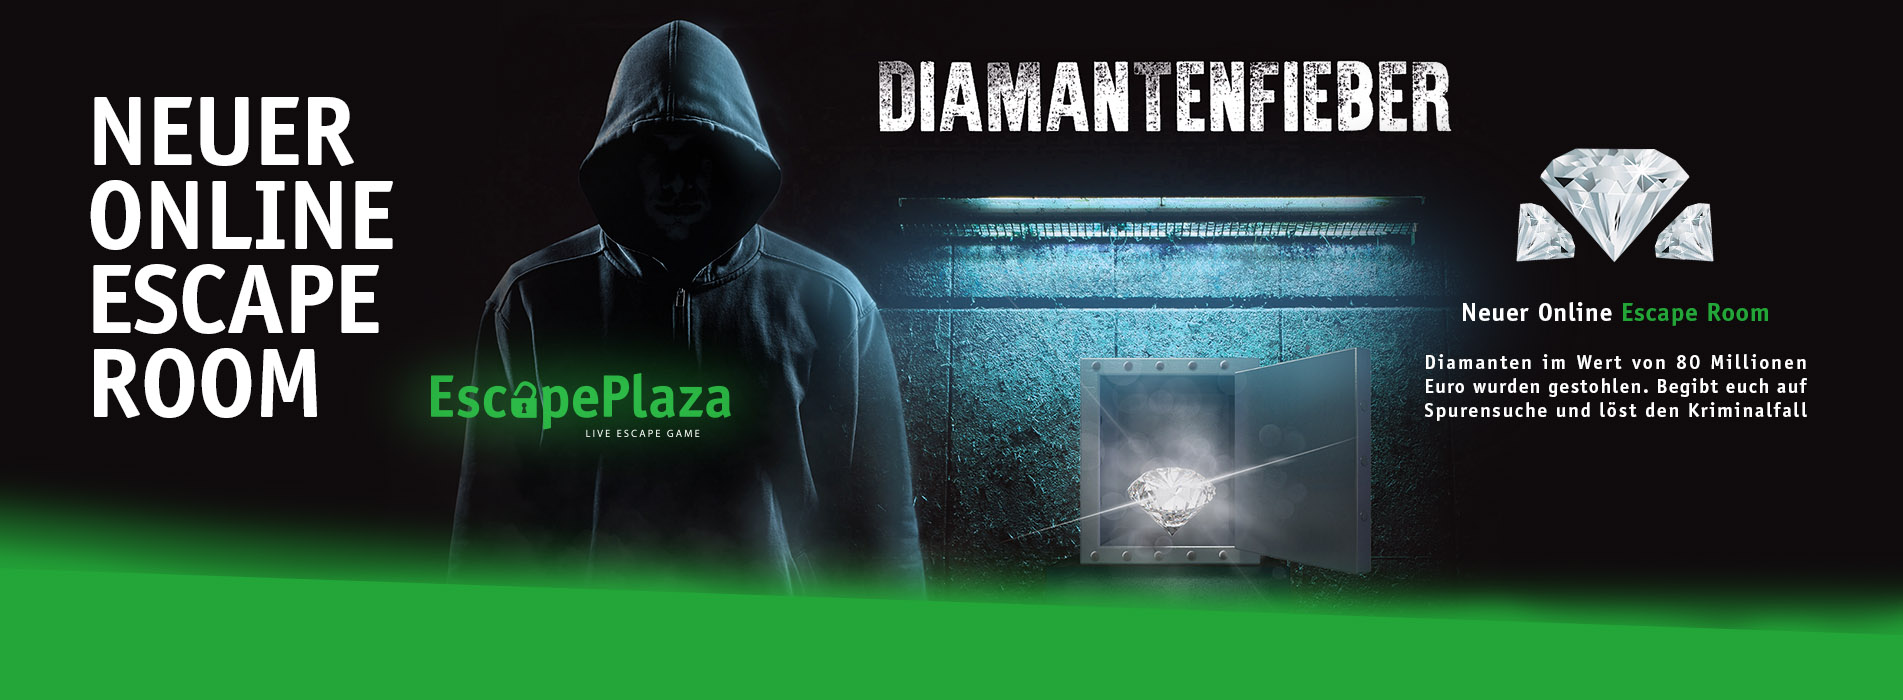 Diamantenfieber - Online Escape Room